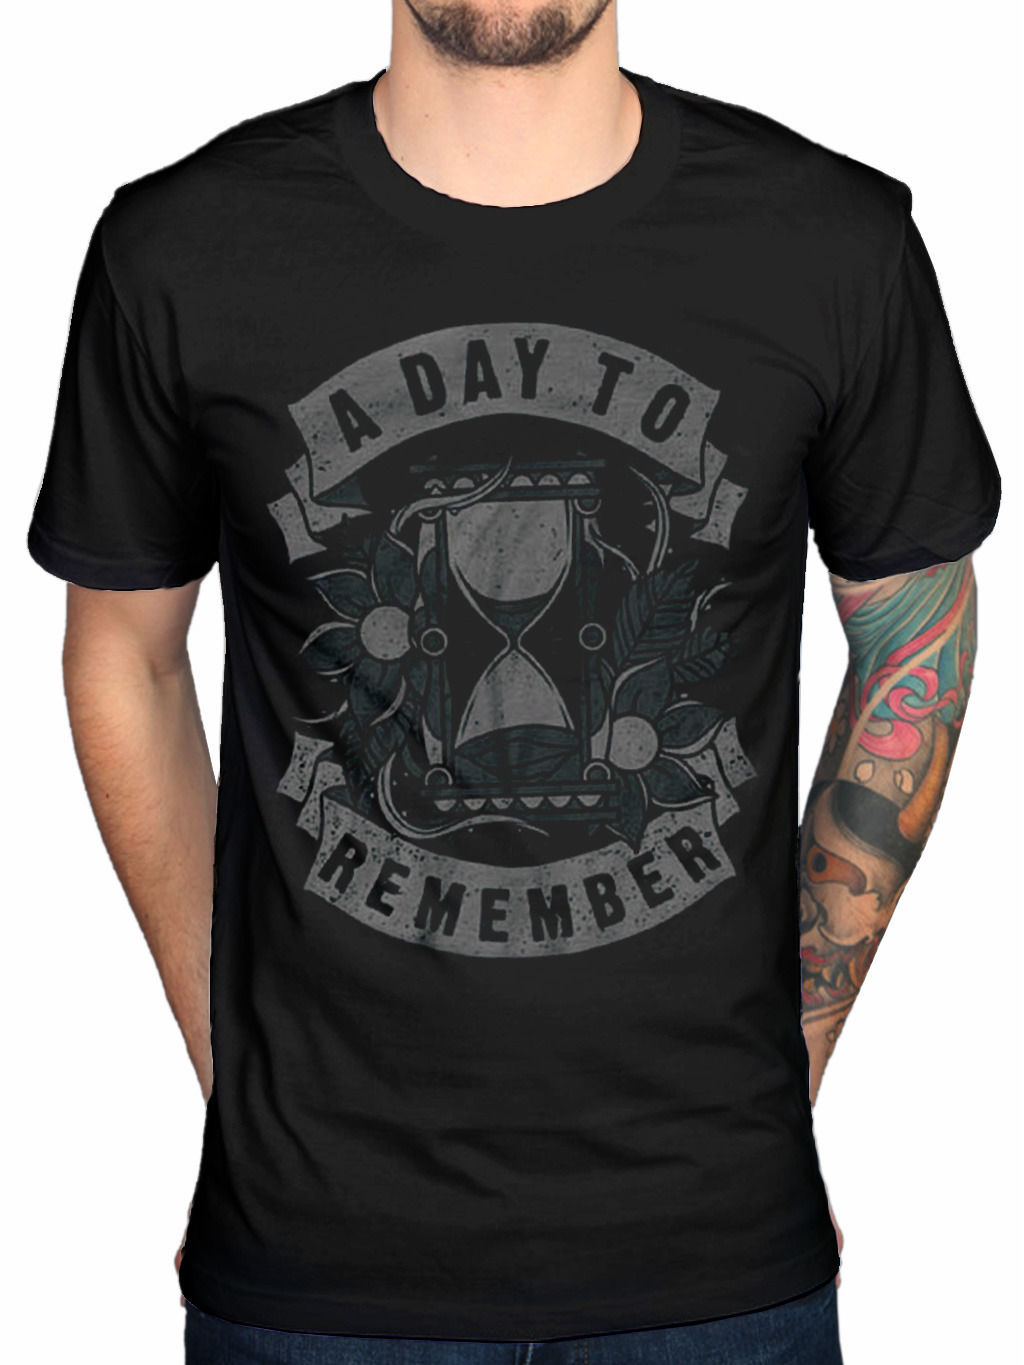 Gildan 2017 Customize A Day To Remember Hourglass T Shirt Jeremy Mckinnon Common Courtesy Cb Printed T Shirt O-Neck Cool Tops